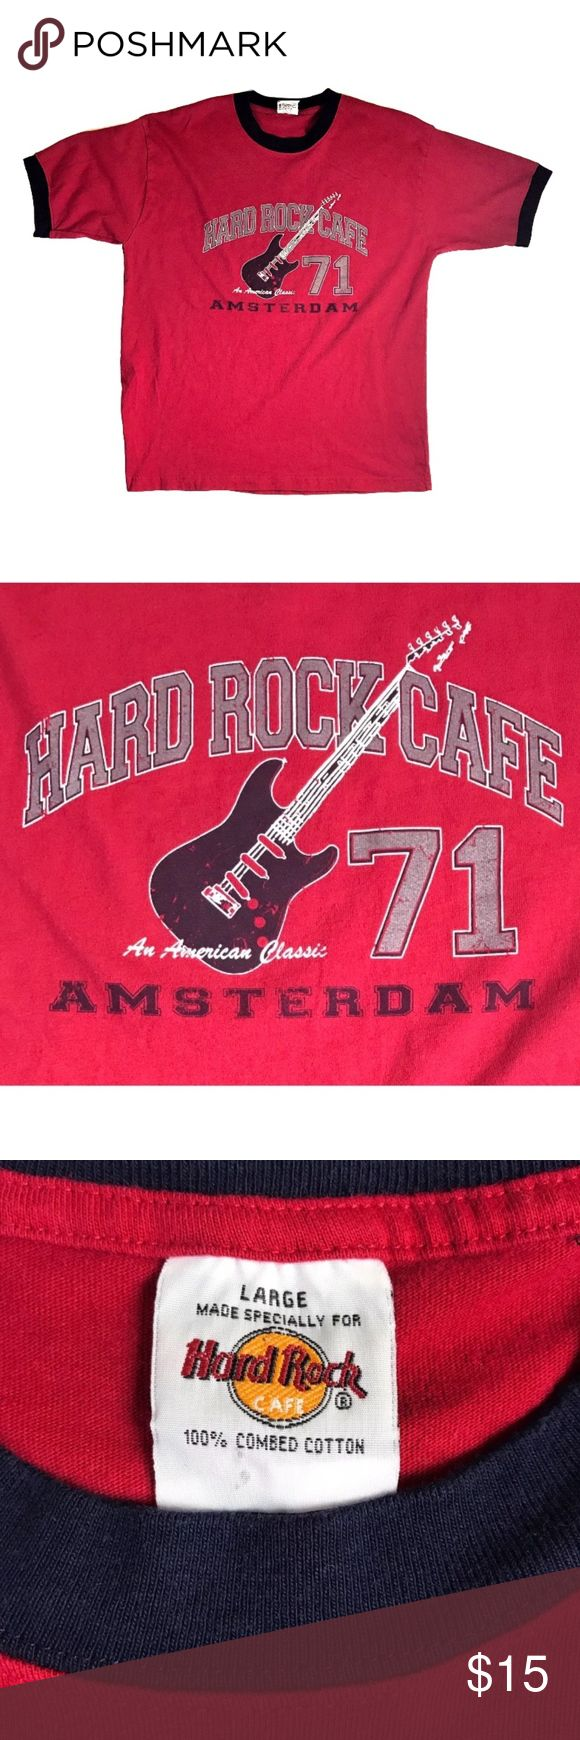 """Hard Rock Cafe T-Shirt Amsterdam Men's Size Large Collector's Hard Rock Cafe T-Shirt from Amsterdam 1971 Guitar Gently Worn Condition with no noted flaws. 100% Cotton Size Large  Measurements Chest: 44"""" (from armpit to armpit) Length: 28"""" Arm Hold: 9.5"""" Back: 20.5"""" Hard Rock Cafe Shirts Tees - Short Sleeve"""